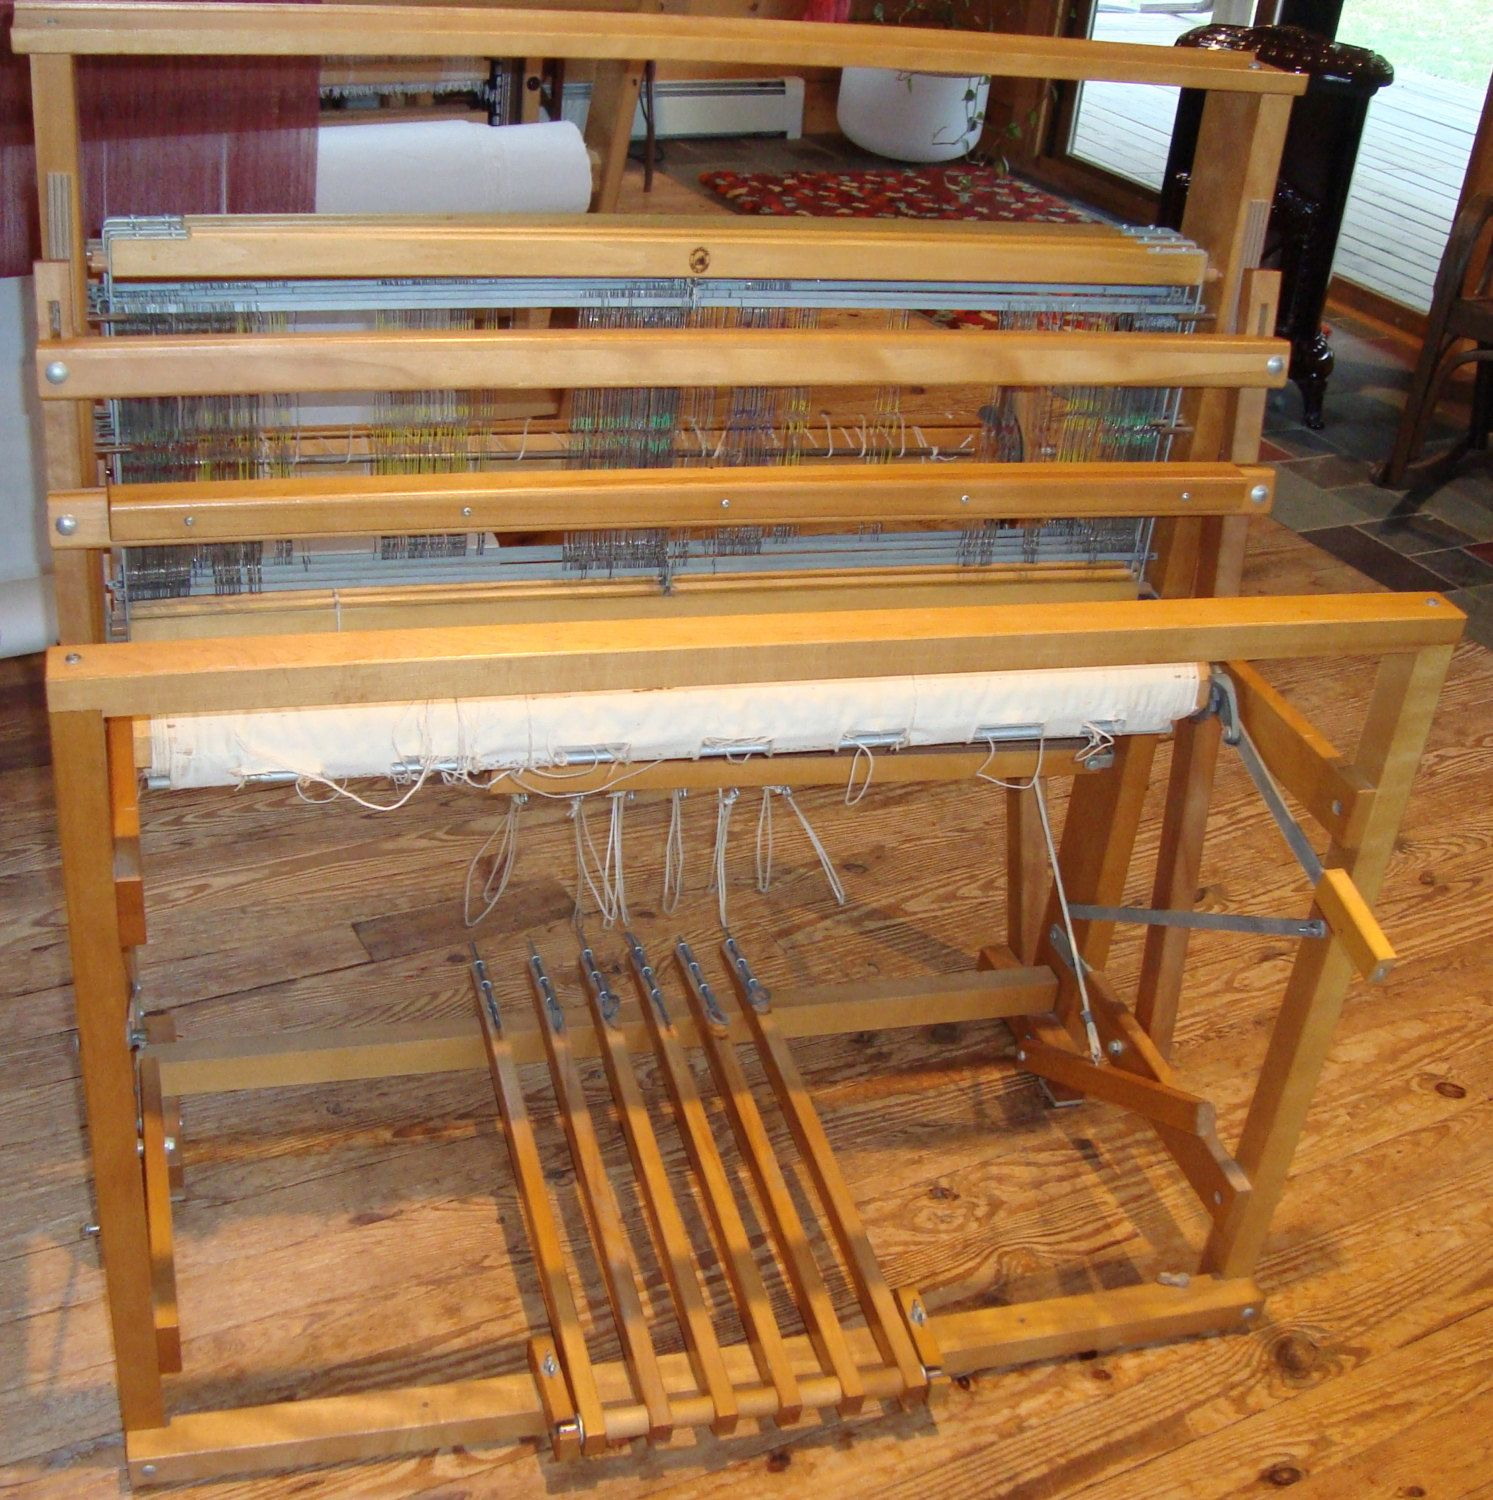 Floor Looms For Sale: 4 Harness Floor Loom